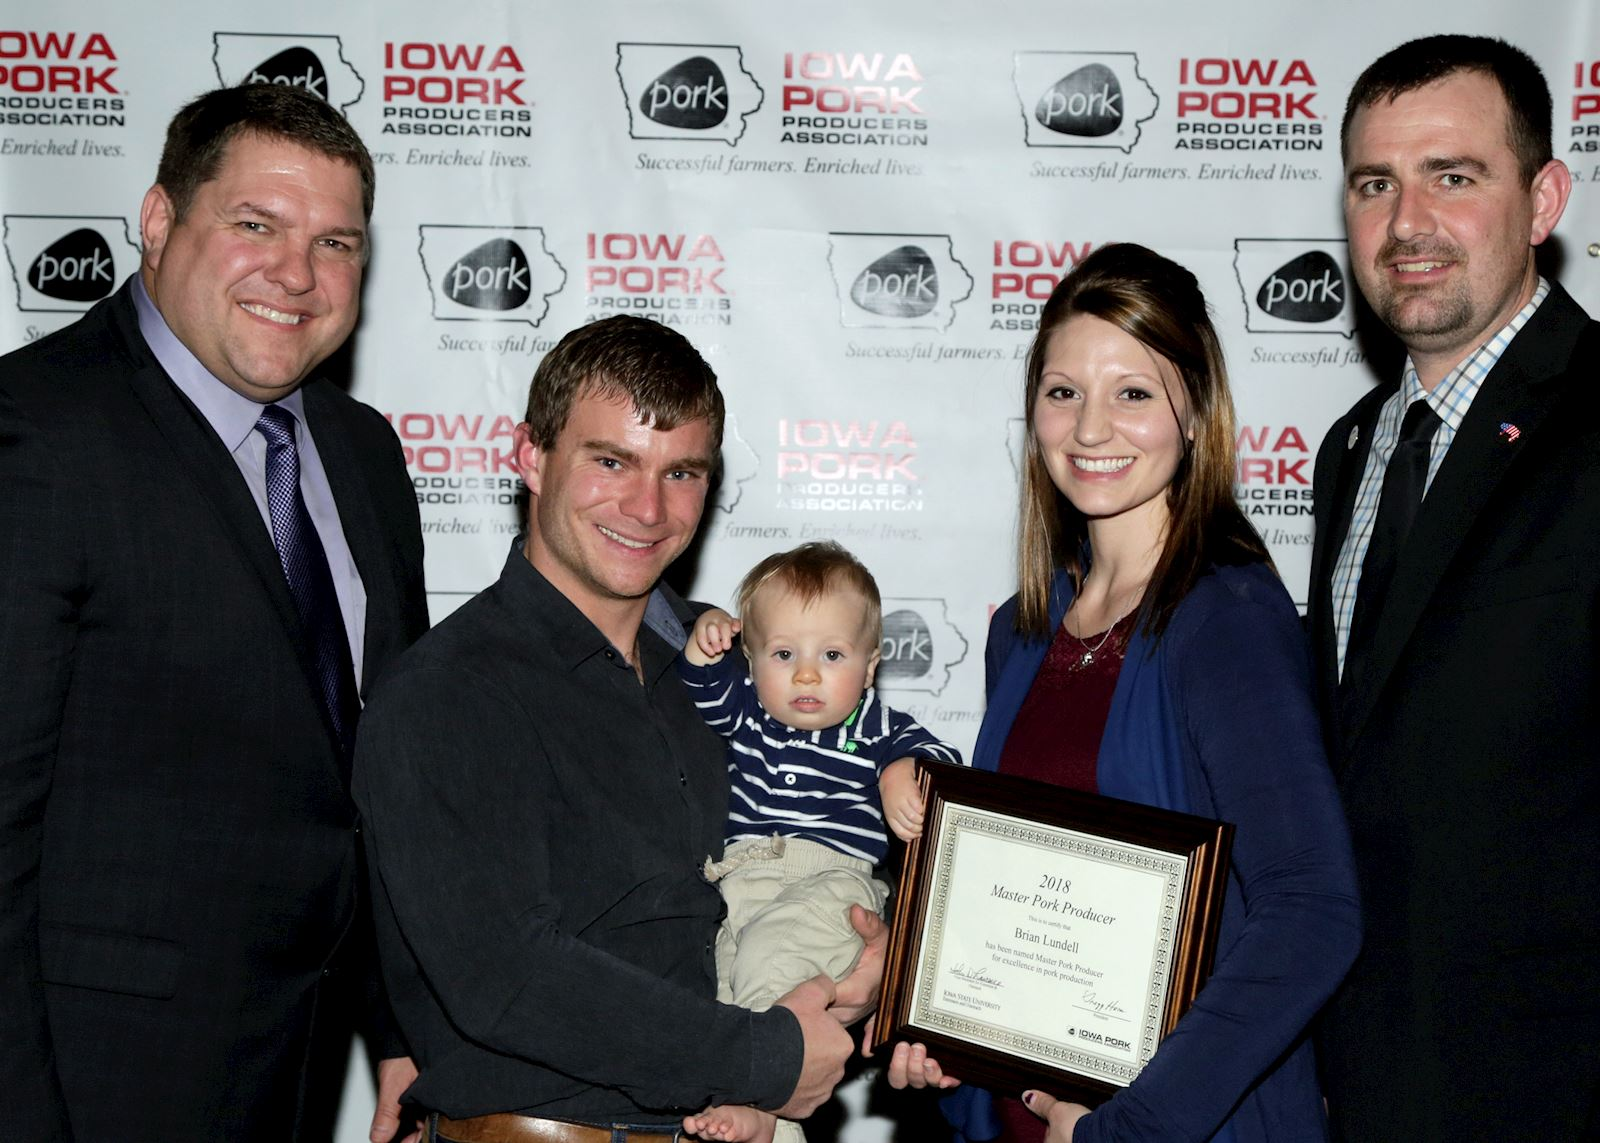 AMVC Grower is IPPA Master Pork Producer